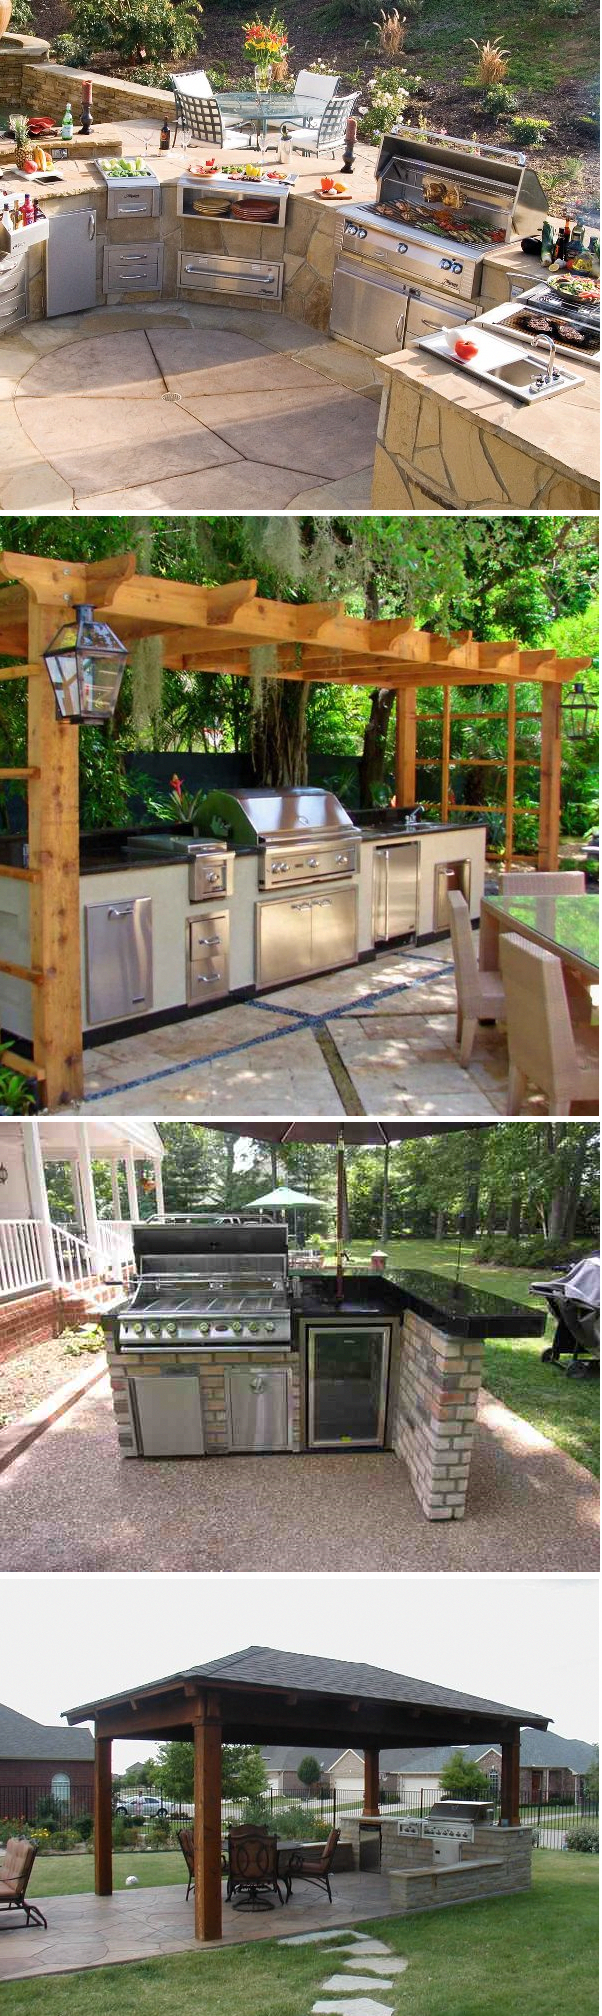 adorable 11 amazing diy outdoor kitchen ideas on a budget outdoor kitchen ideas on outdoor kitchen ideas on a budget id=61371